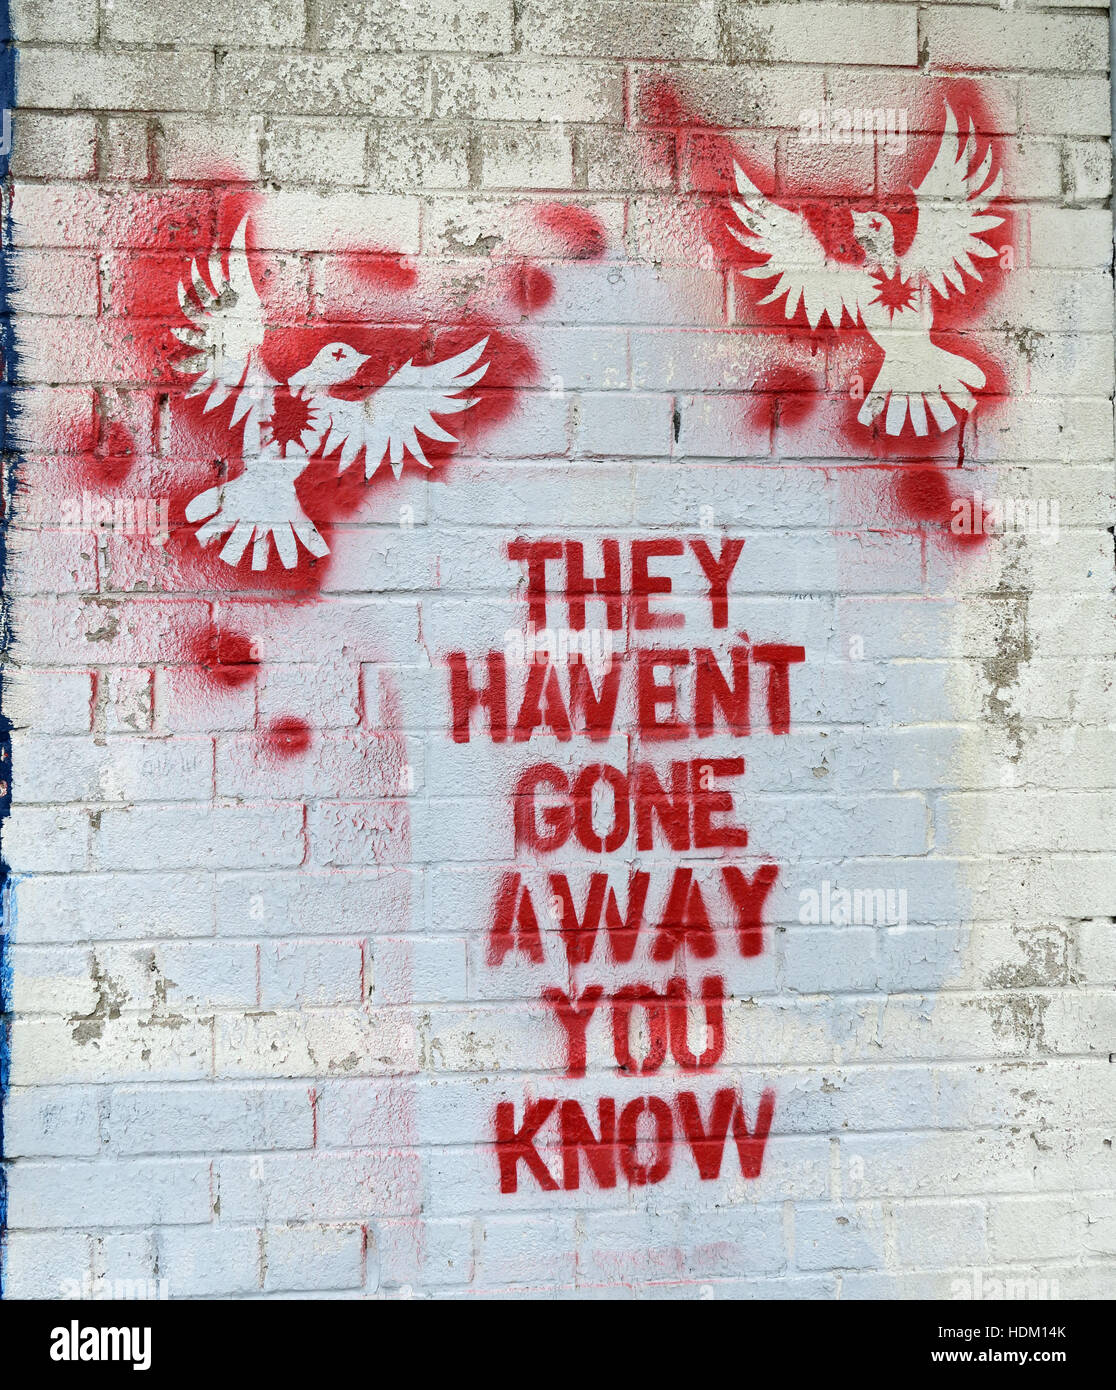 Doves - they Haven't Gone Away You Know - Belfast International Peace Wall,Cupar way,West Belfast,NI,UK (Gerry - Stock Image